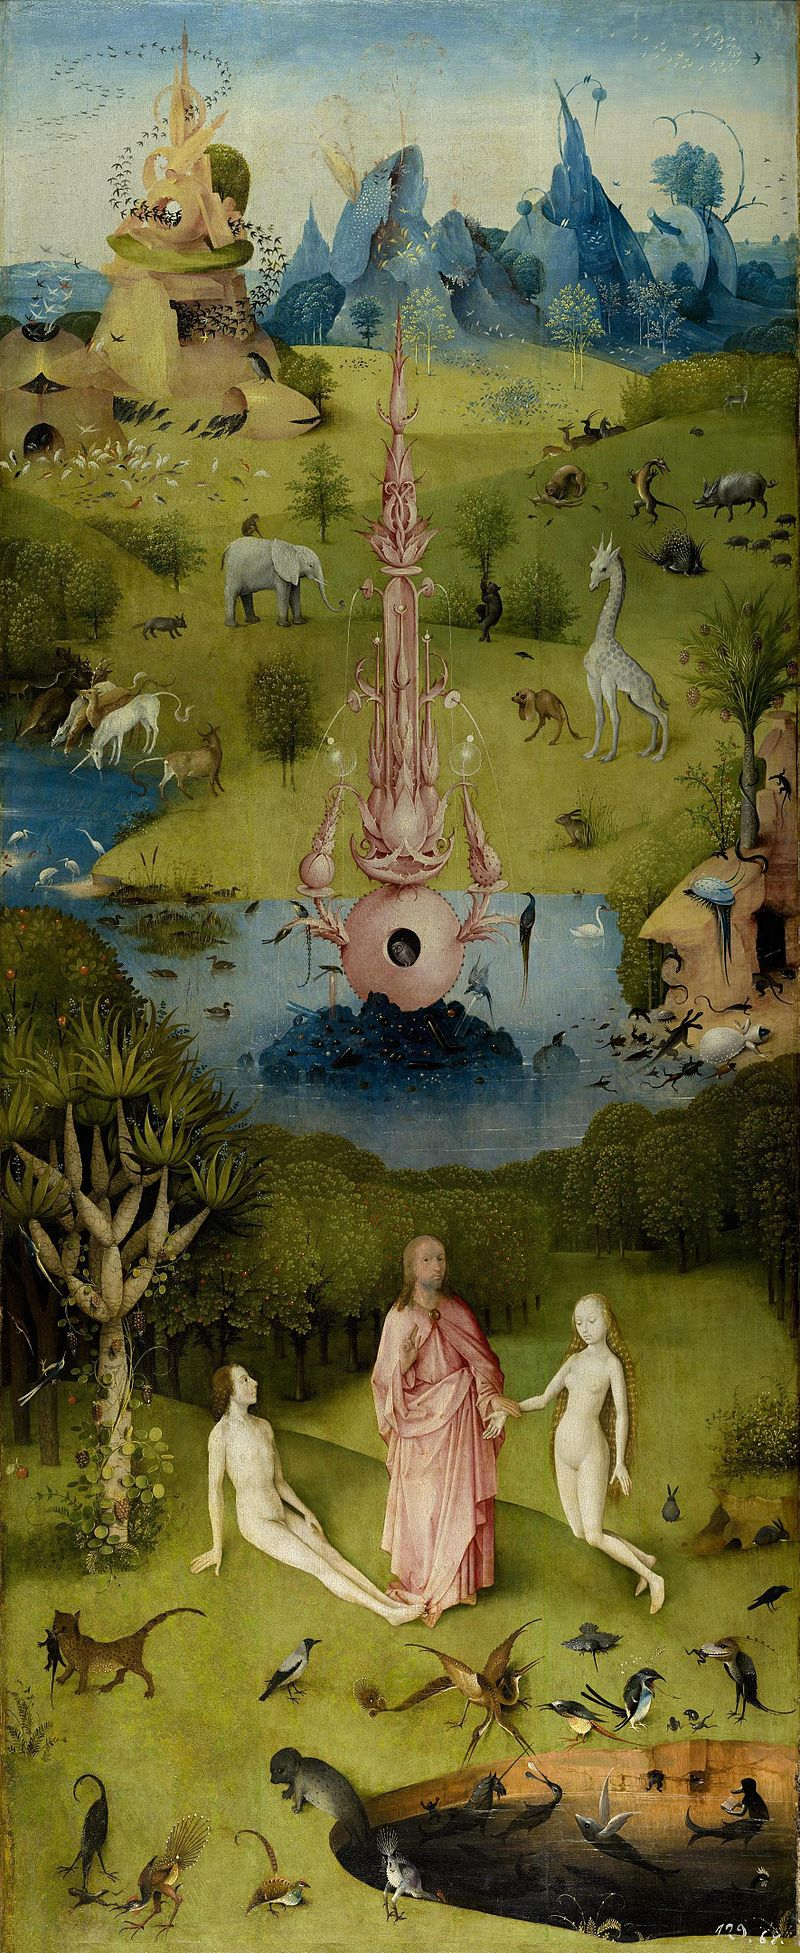 SLC Hieronymus_Bosch_-_The_Garden_of_Earthly_Delights_-_The_Earthly_Paradise_(Garden_of_Eden)